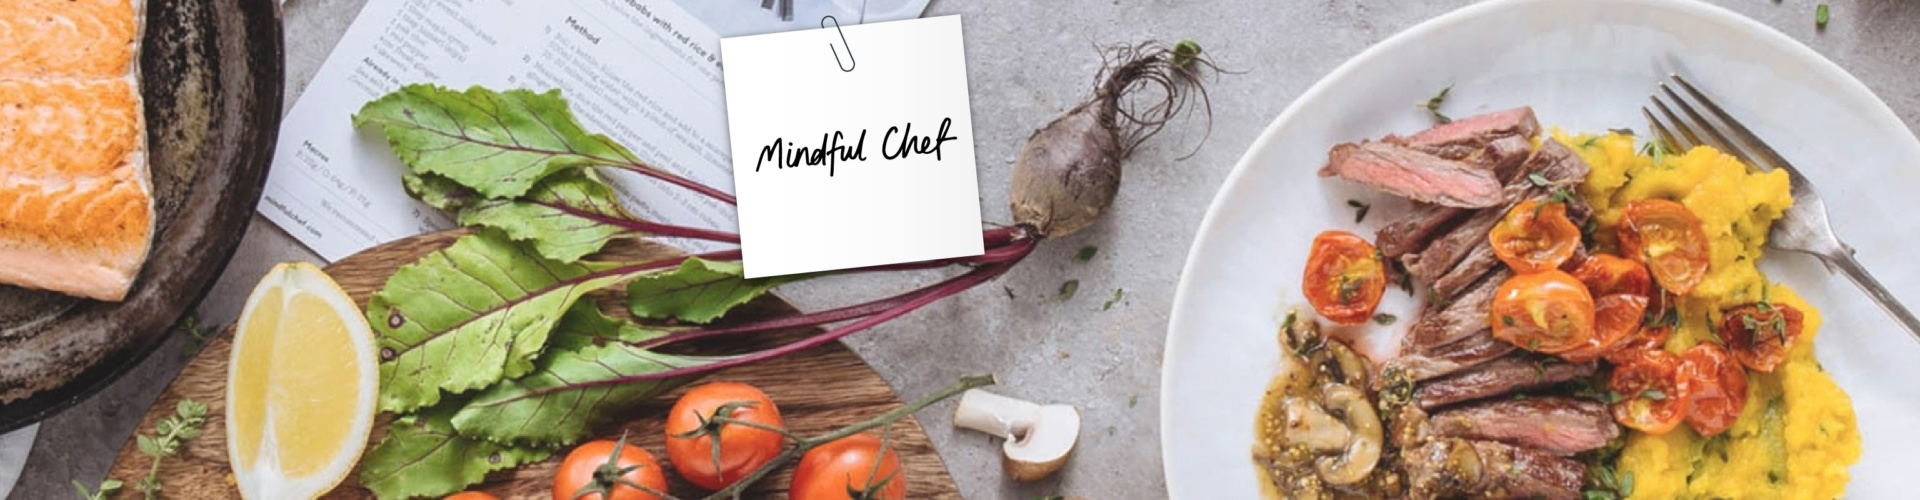 Mindful-Chef-Header